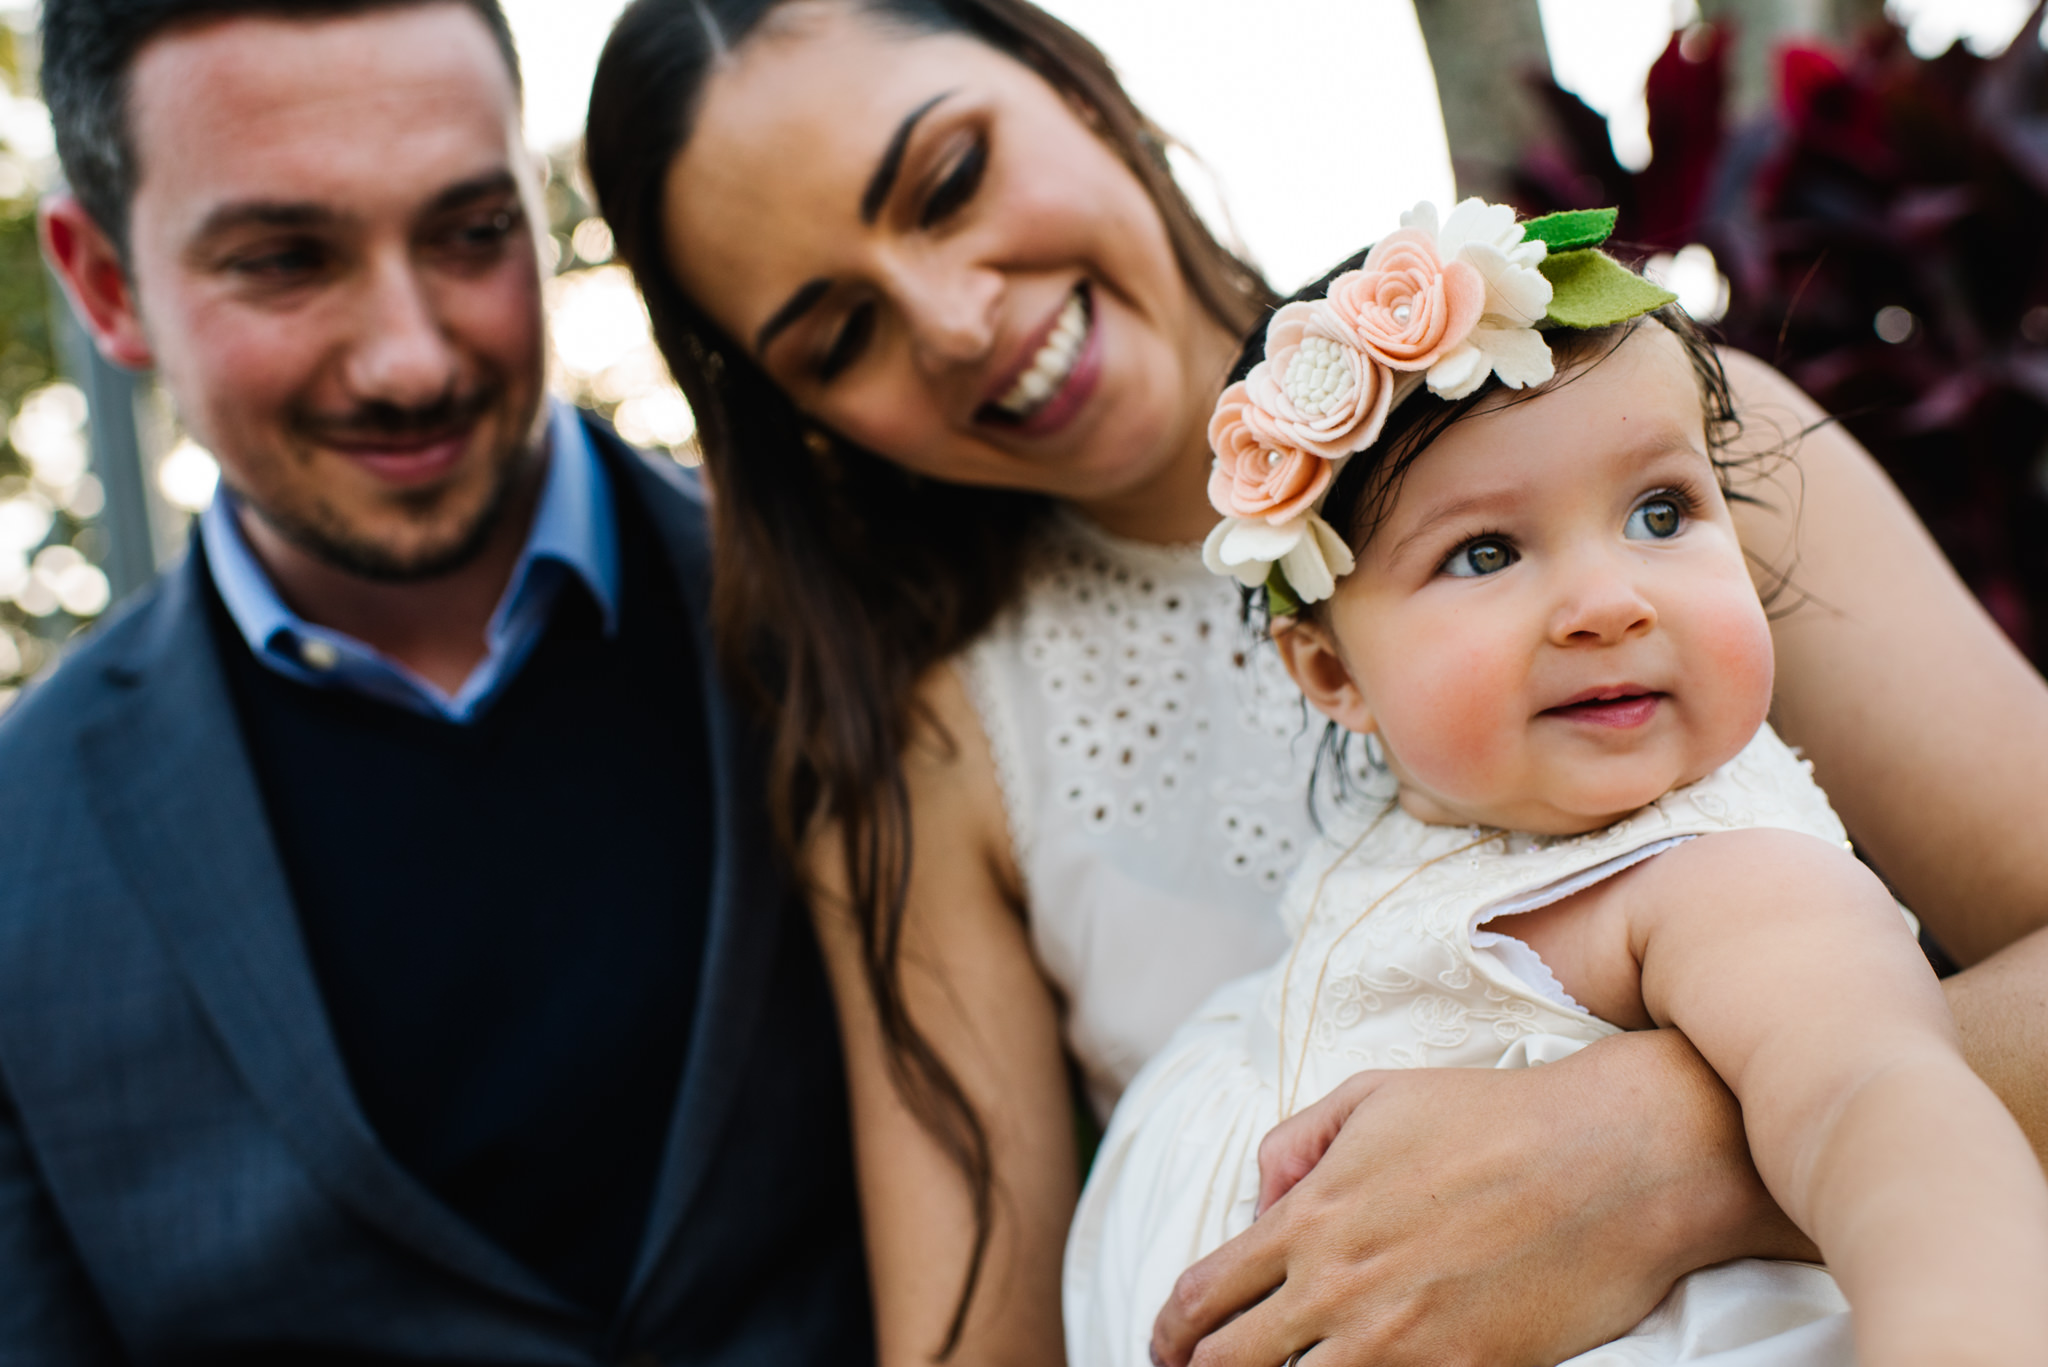 Outdoor family photo at christening reception